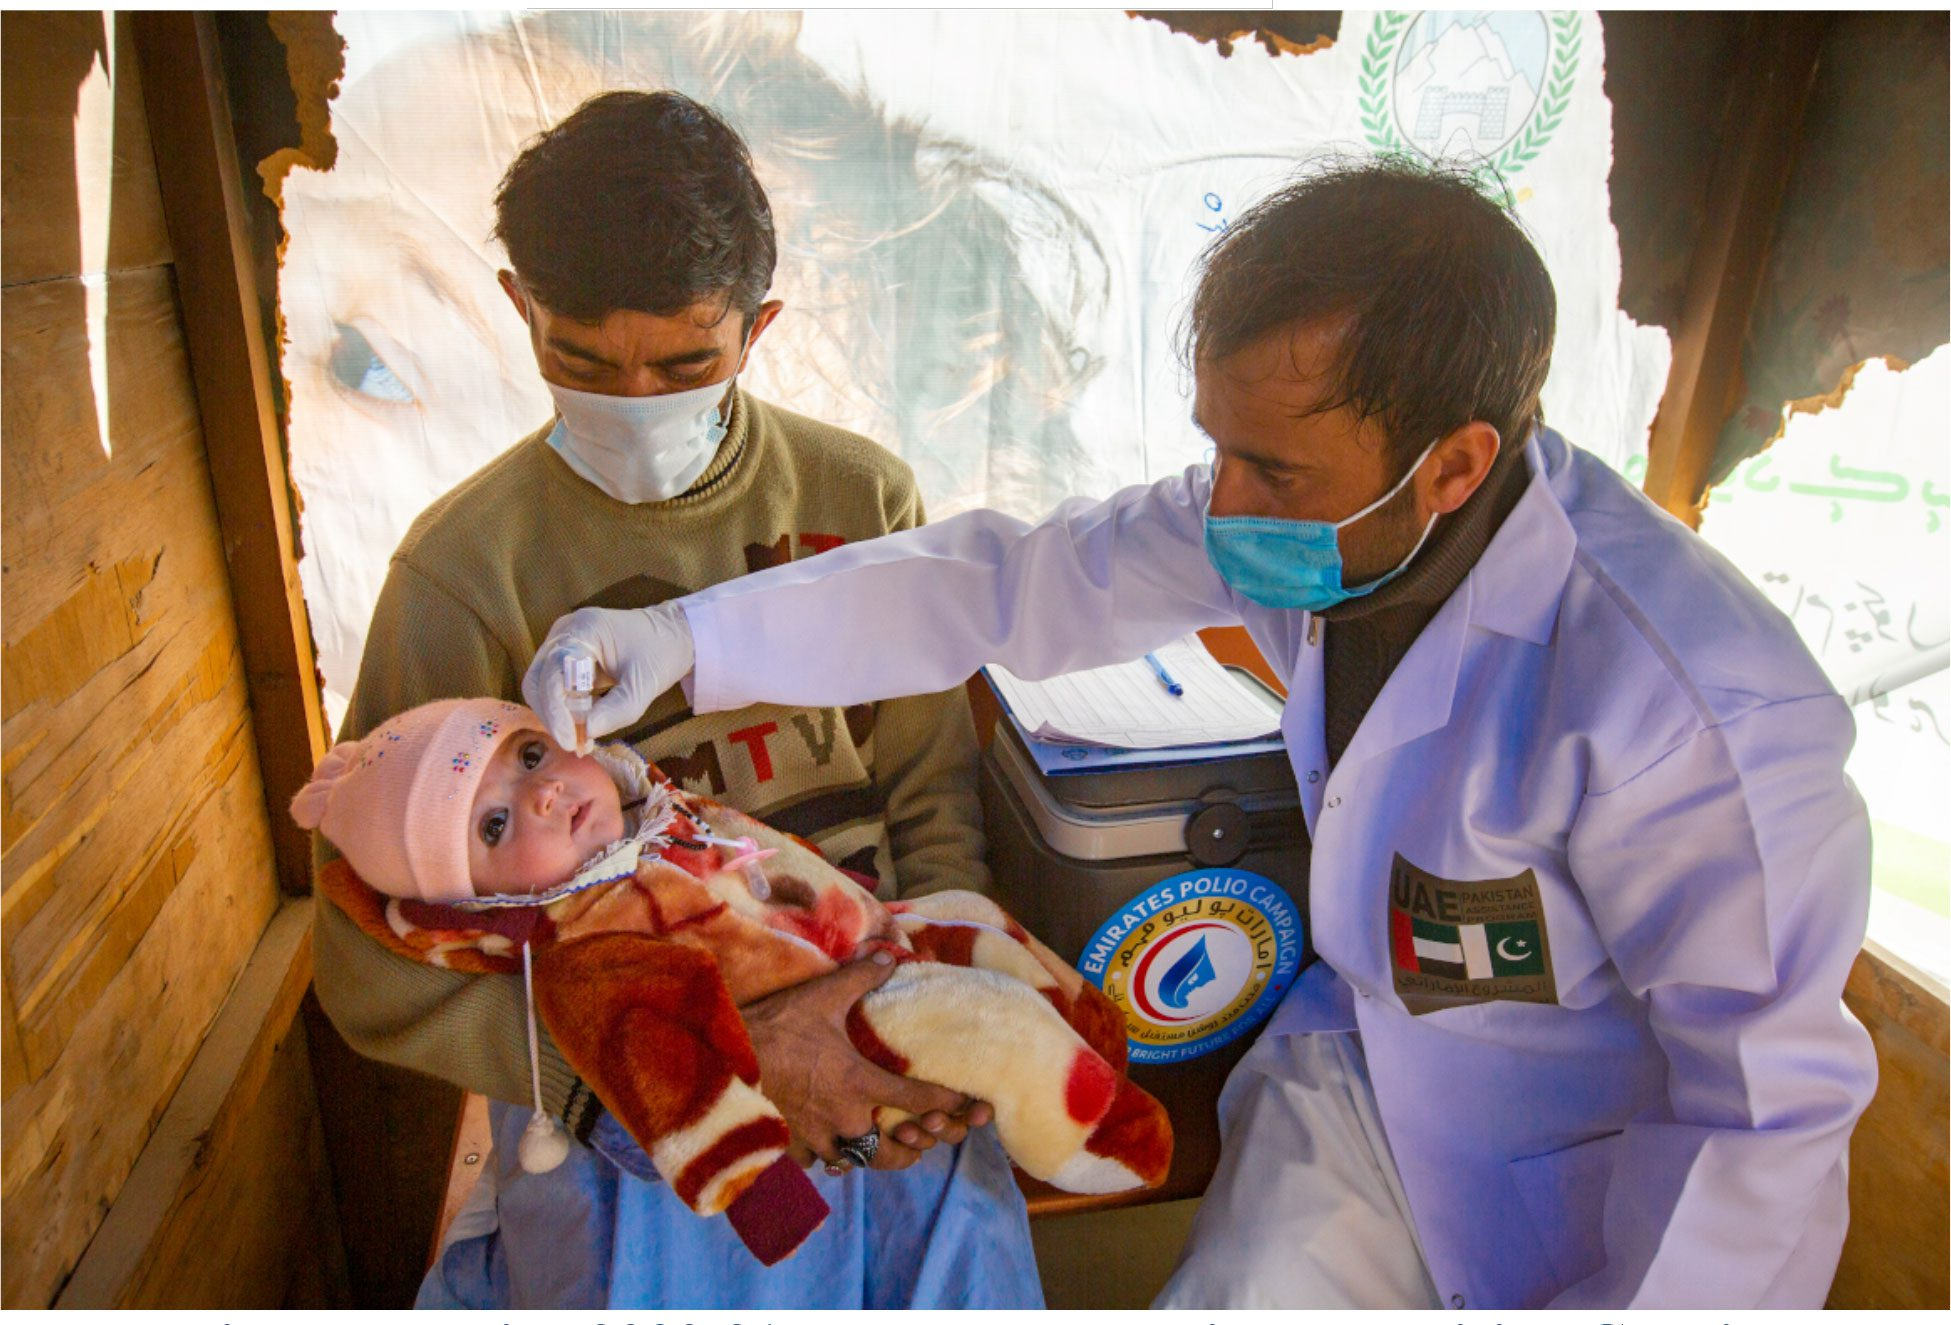 A child is immunized in Pakistan with the help of the UAE